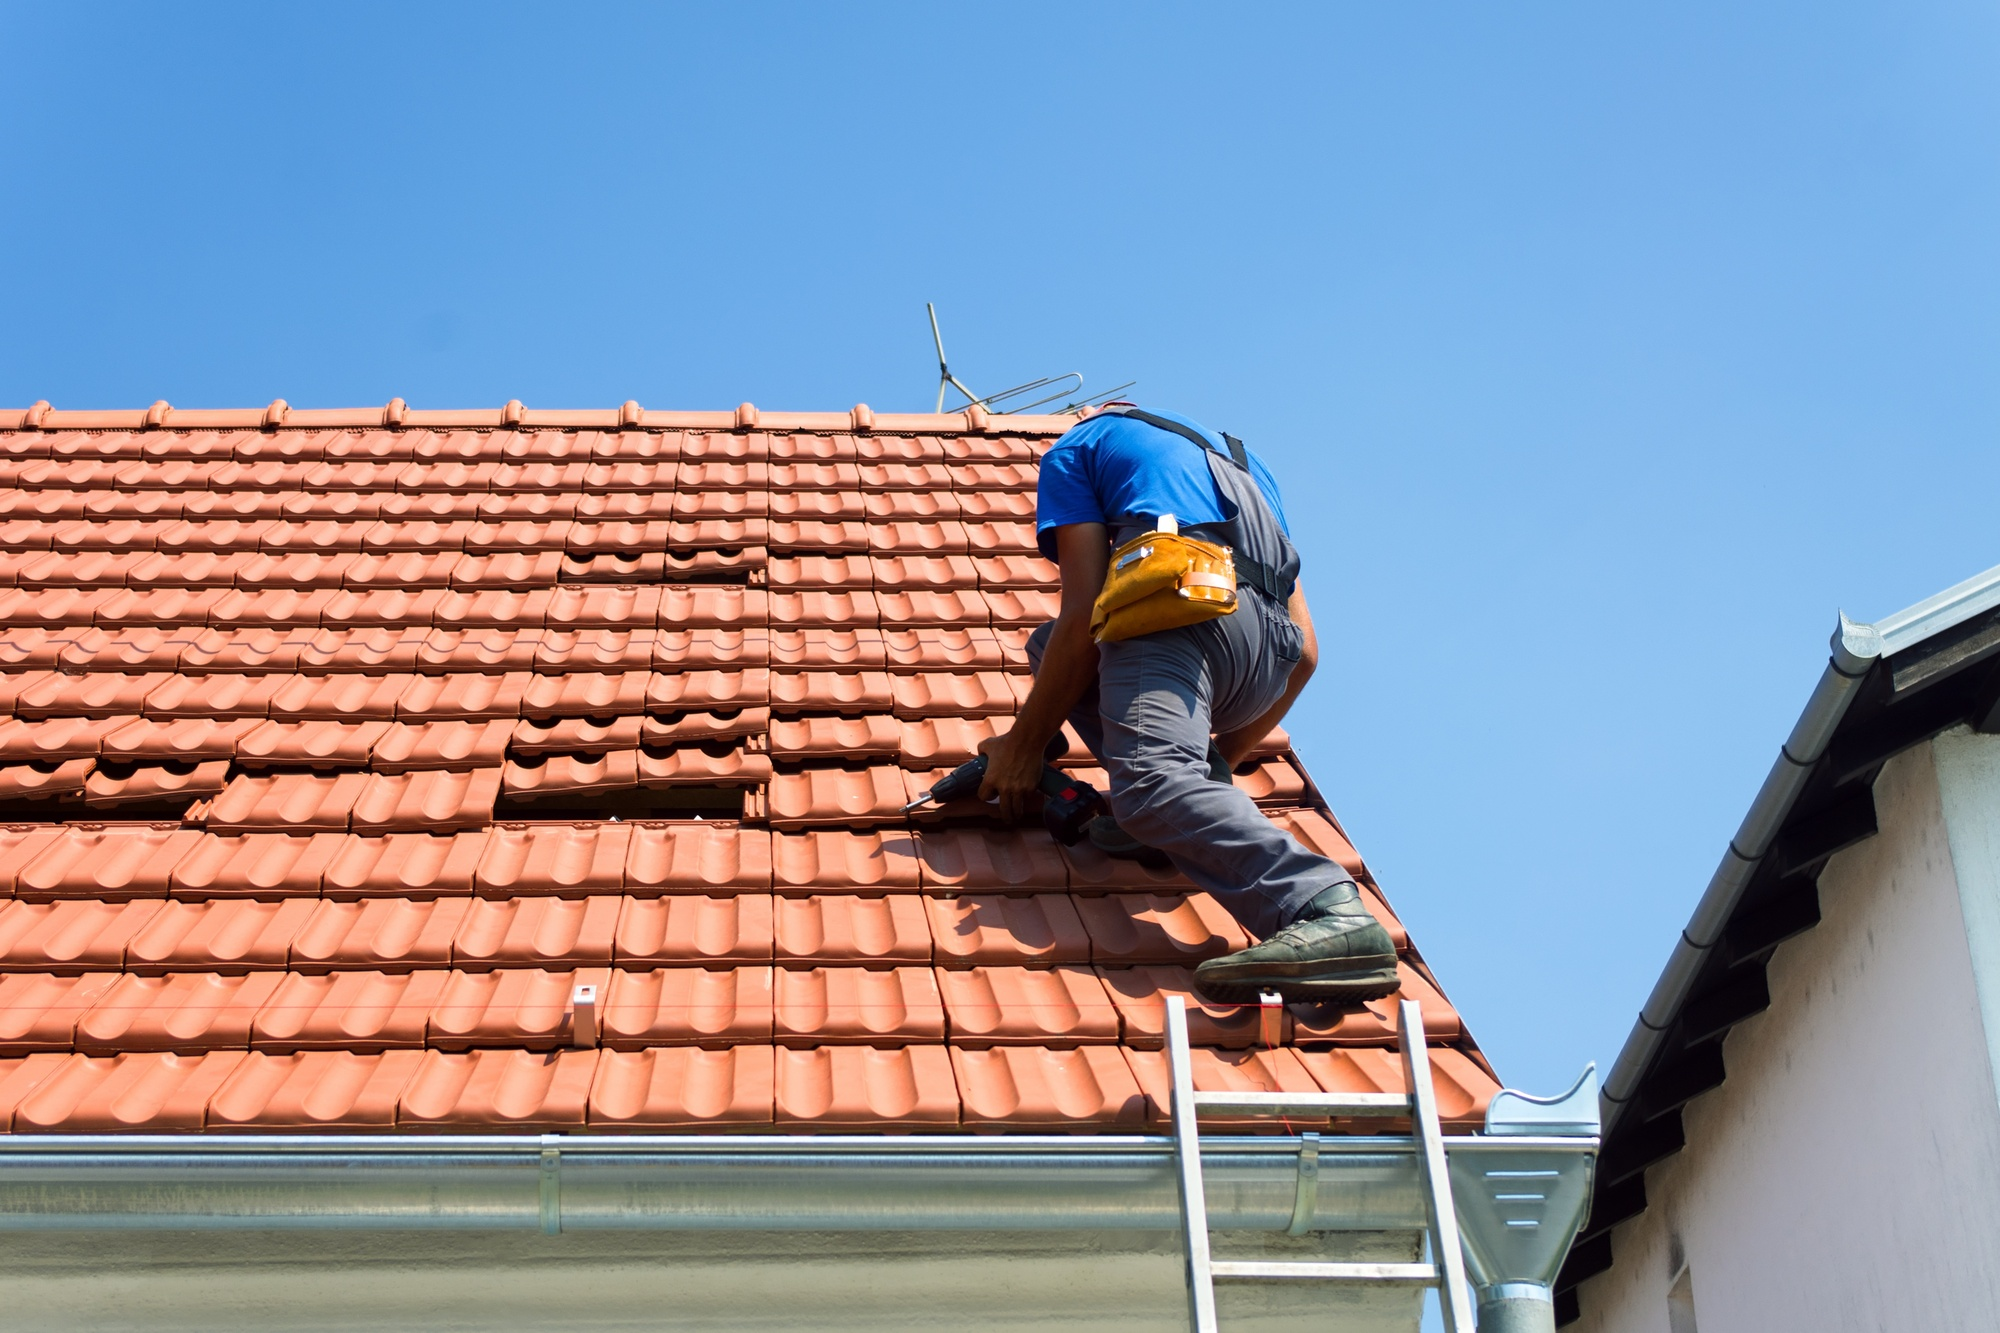 Roof Maintenance – Keep Roof In Tip-Top Shape